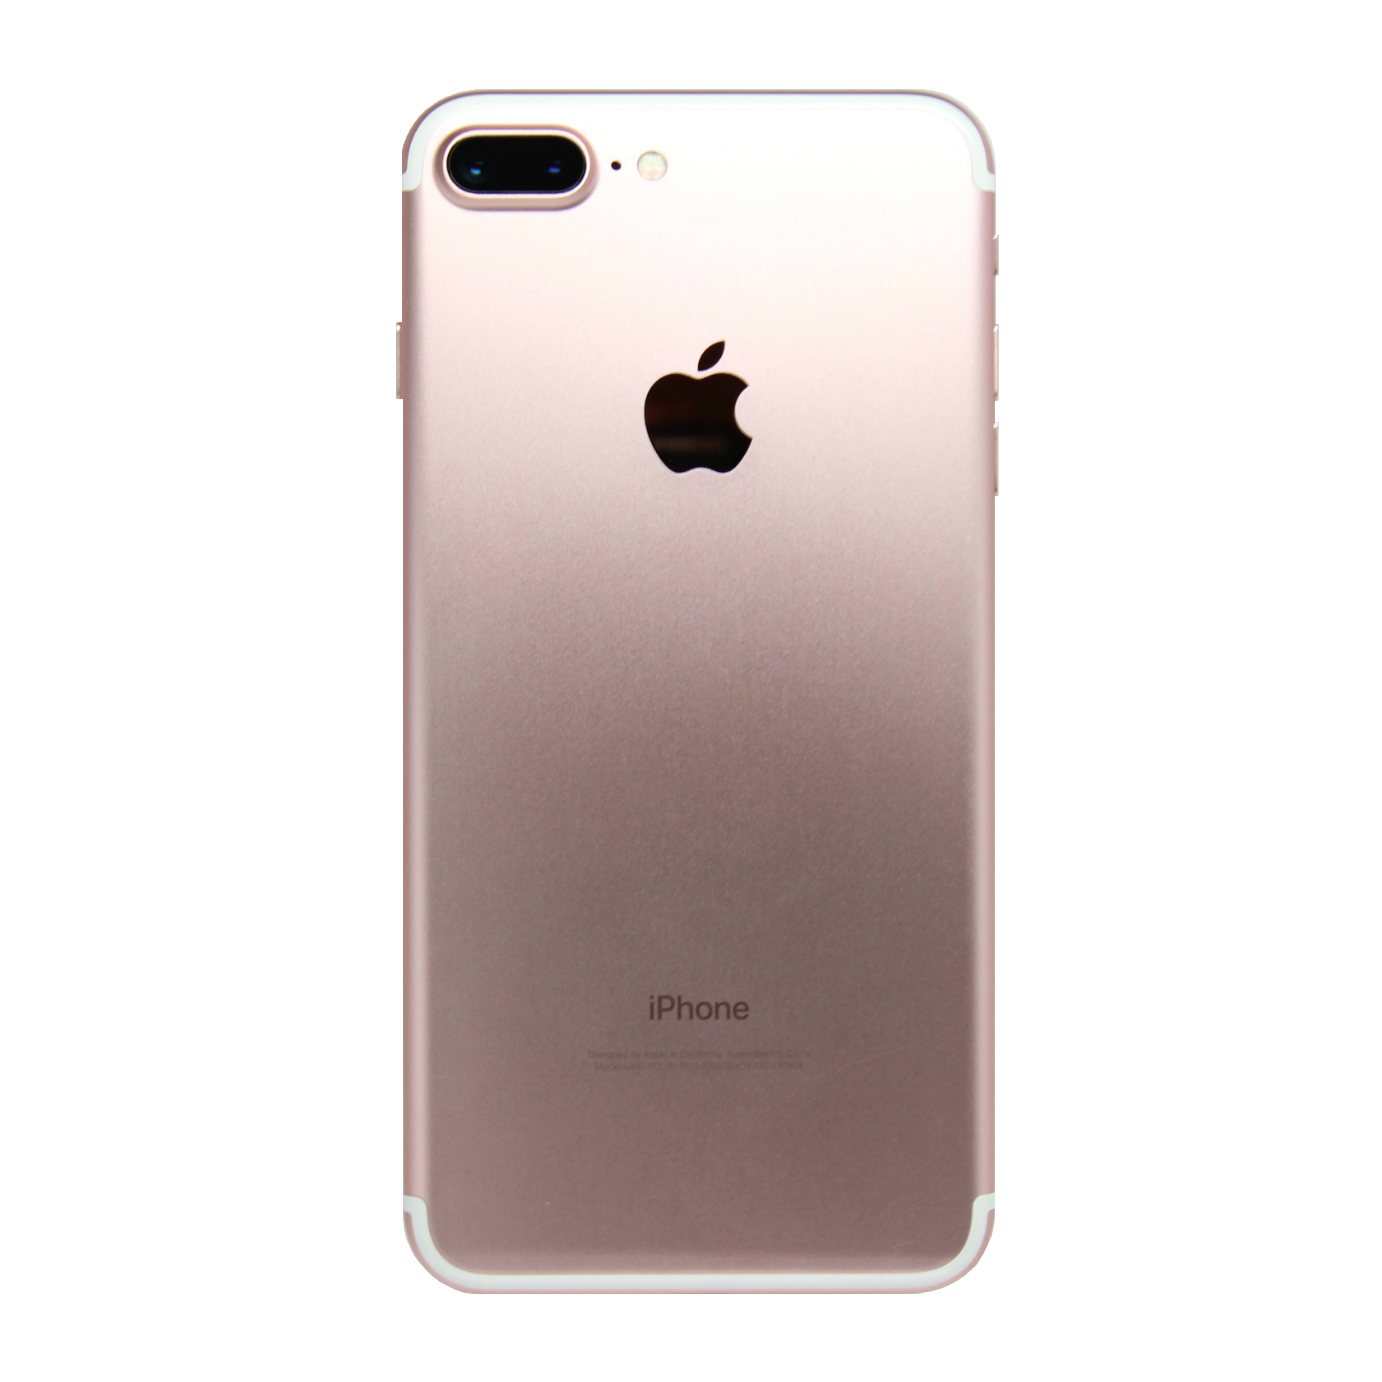 Apple Iphone 7 Plus A1784 32gb Gsm Unlocked Excellent Ebay